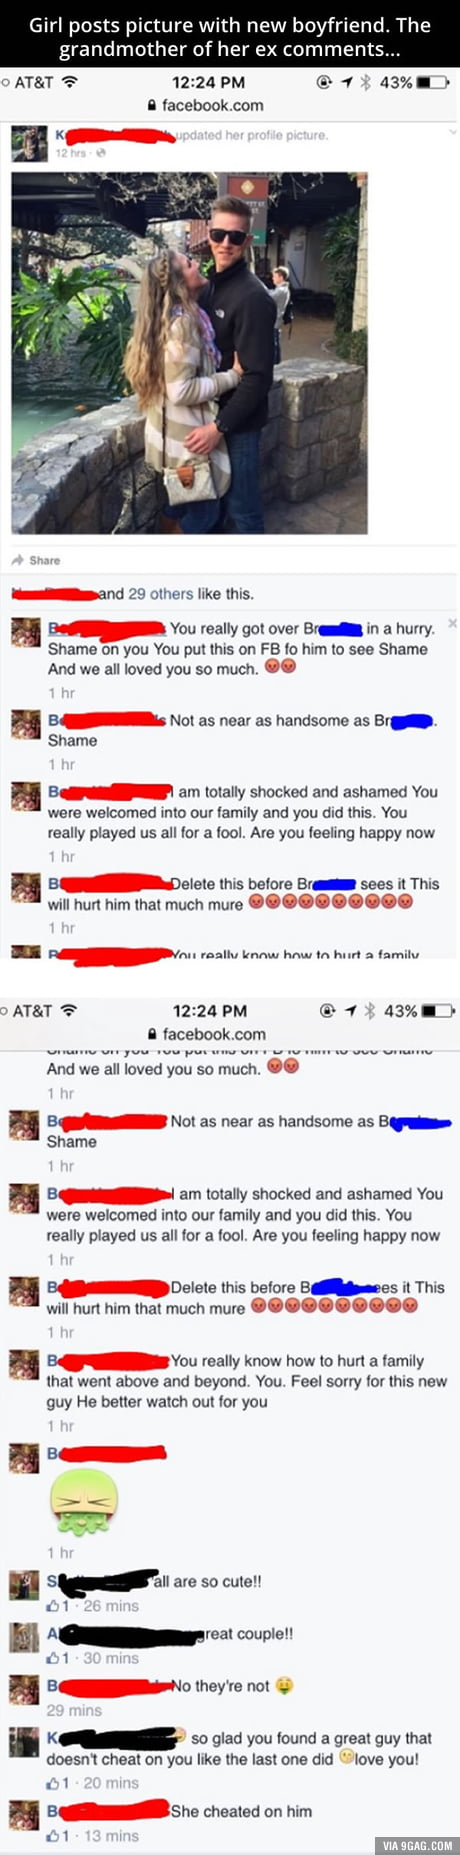 Who the hell keeps their ex's grandmother as their facebook friend anyway?